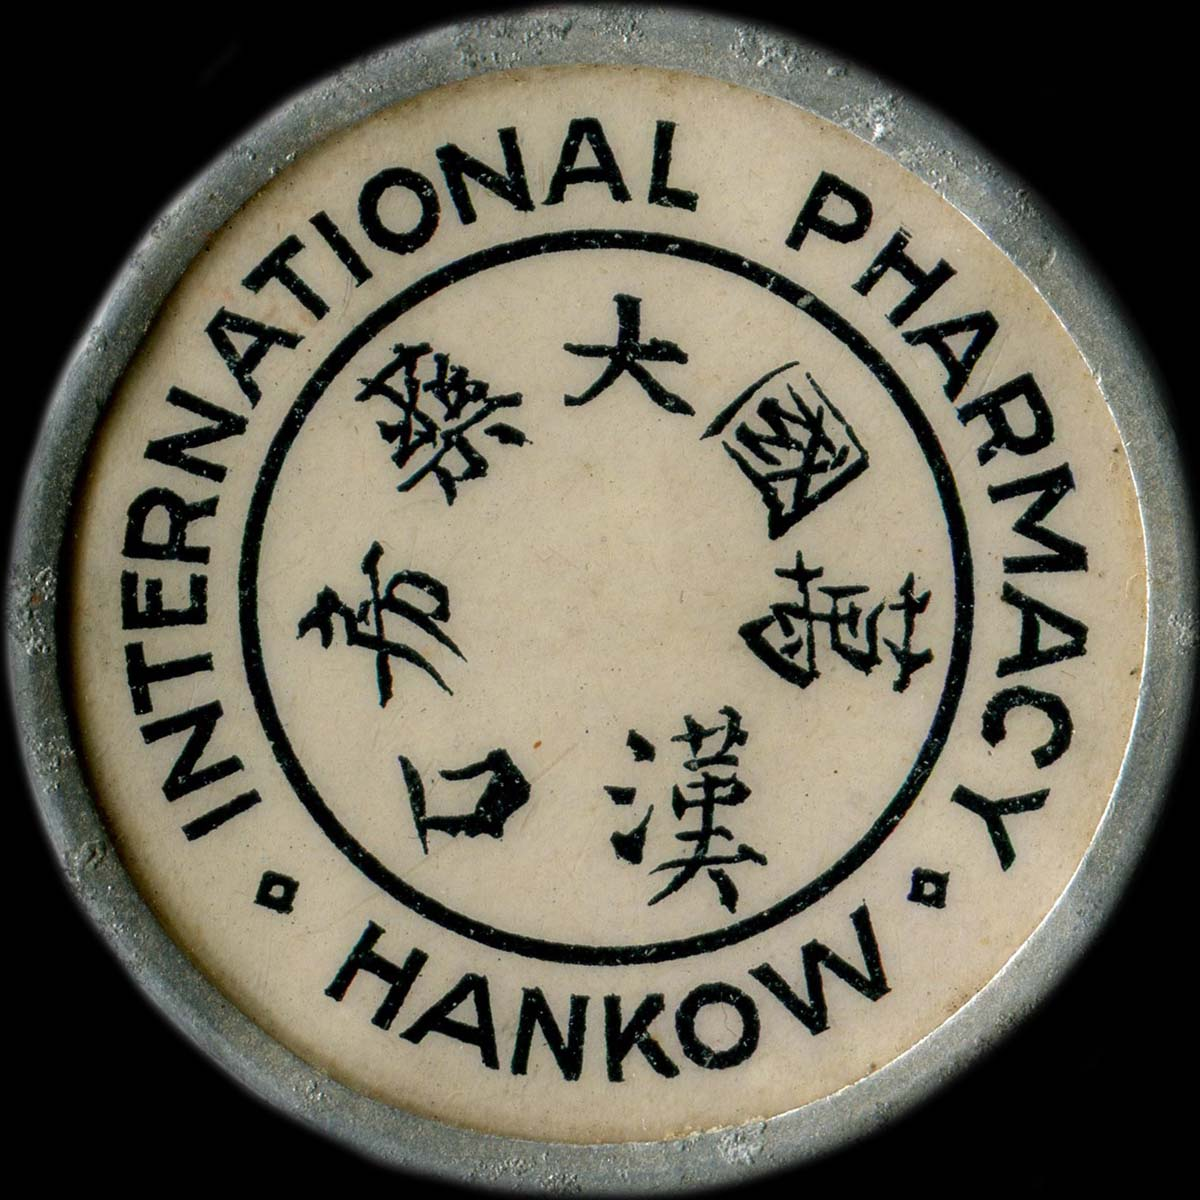 Timbre-monnaie chinois International Pharmacy Hankow 10 cts - avers